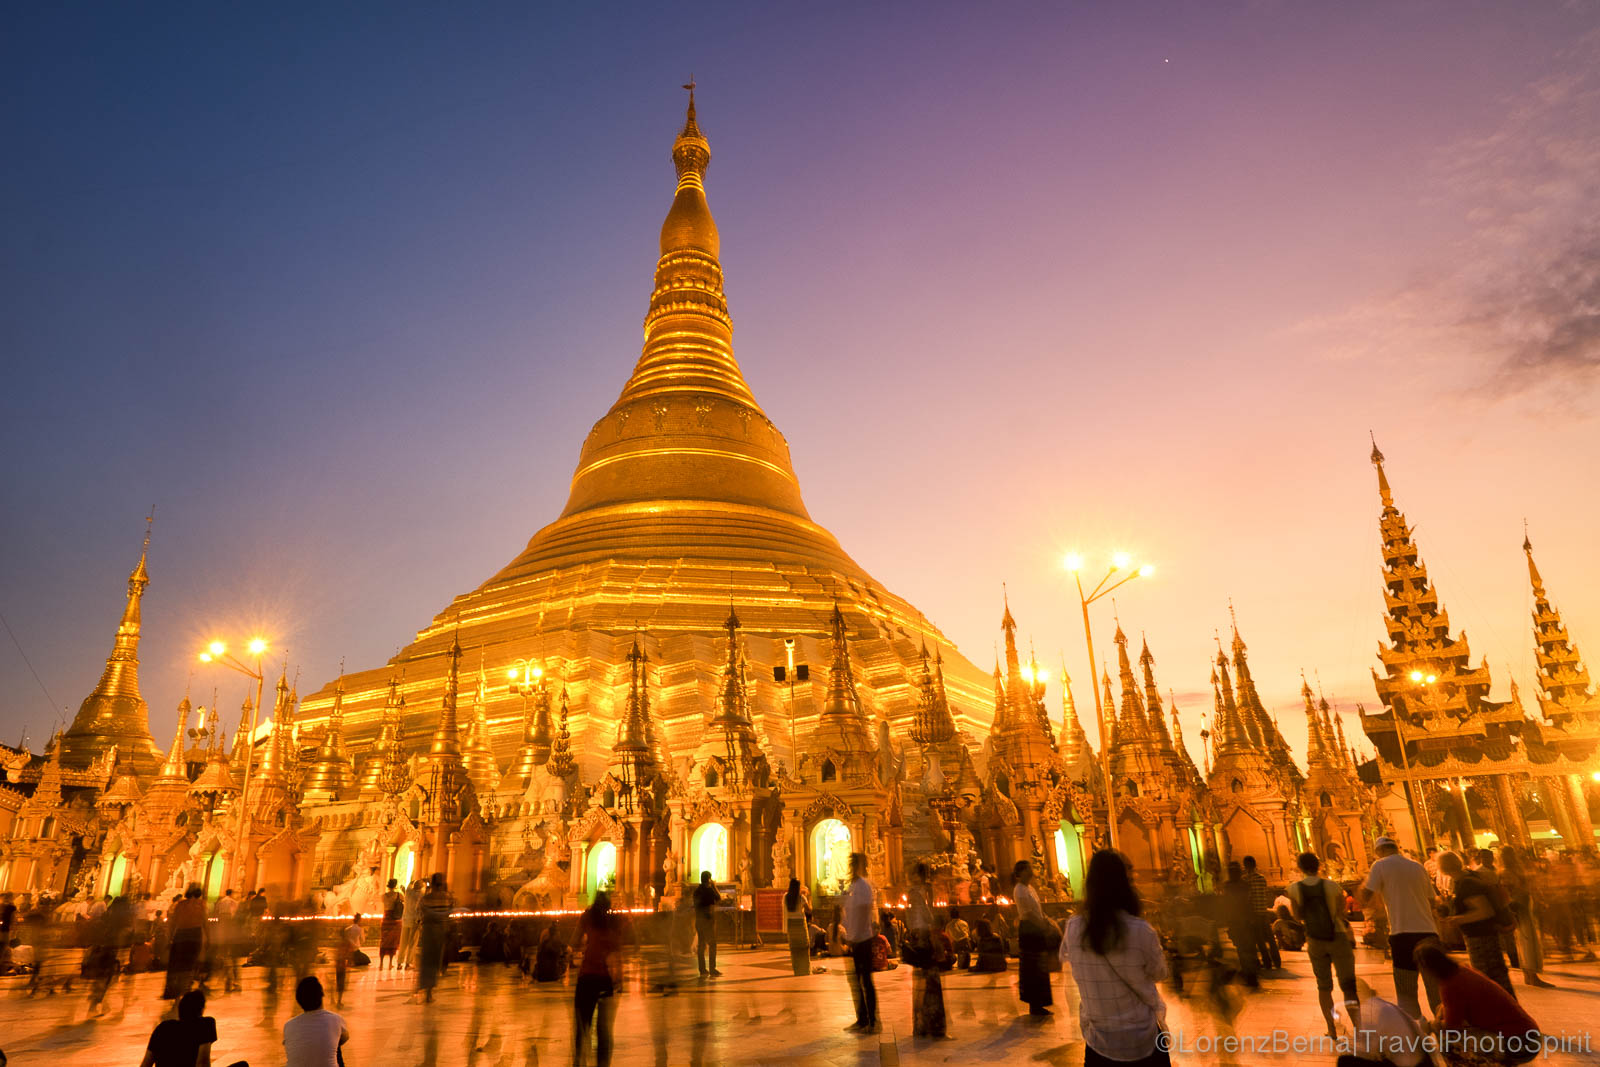 Shwedagon Paya at sunset.